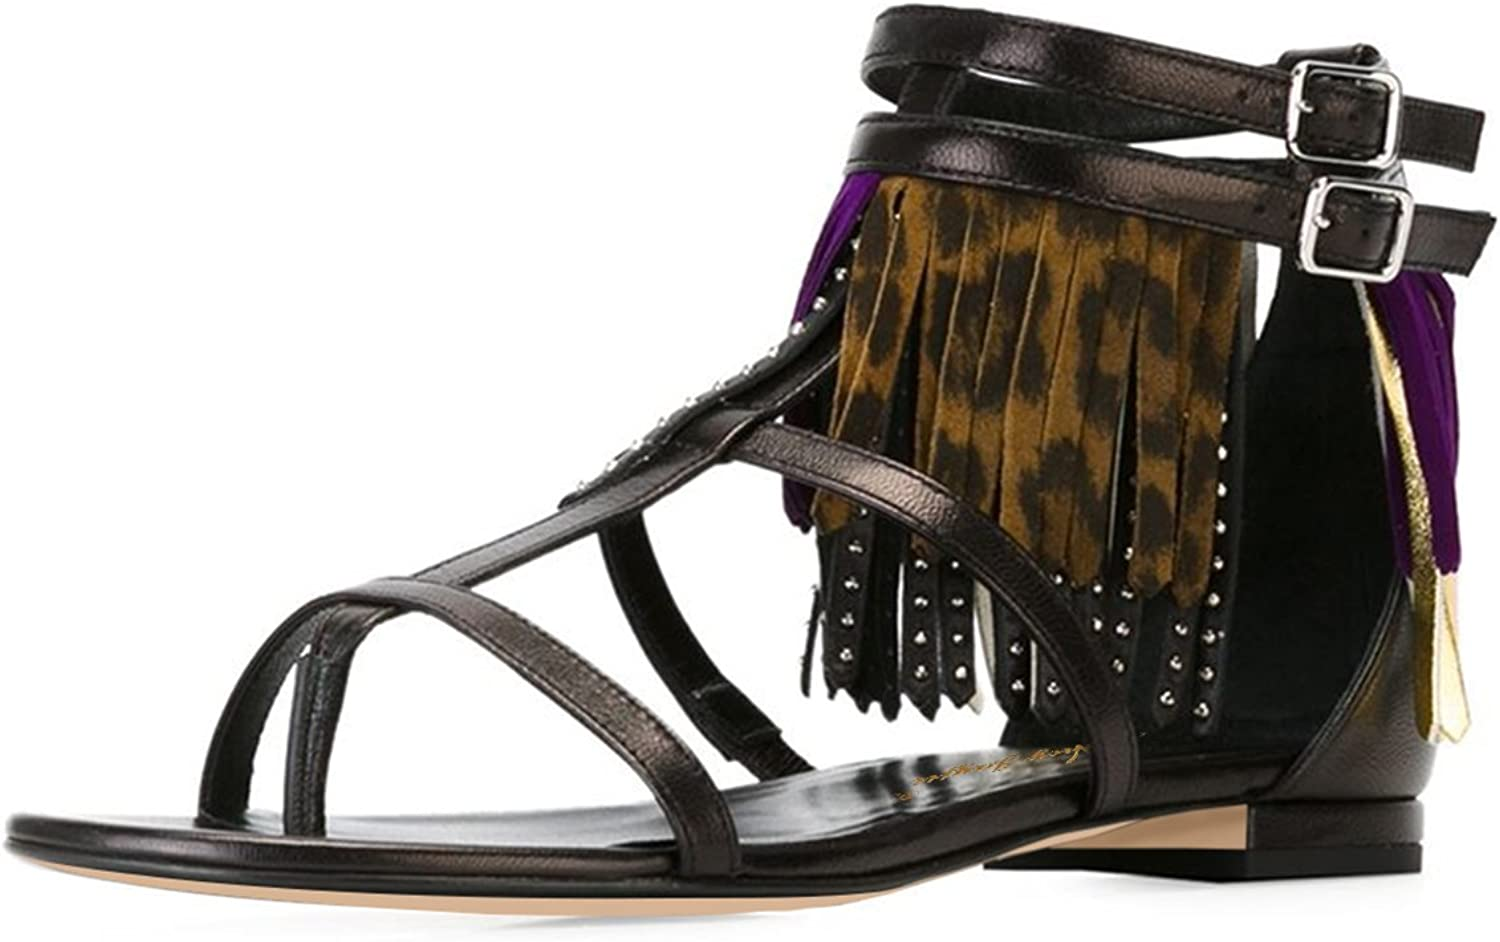 NJ Womens Open Toe Gladiator Thong Sandals T-Strap Flip Flops Tassels Flats shoes with Studded